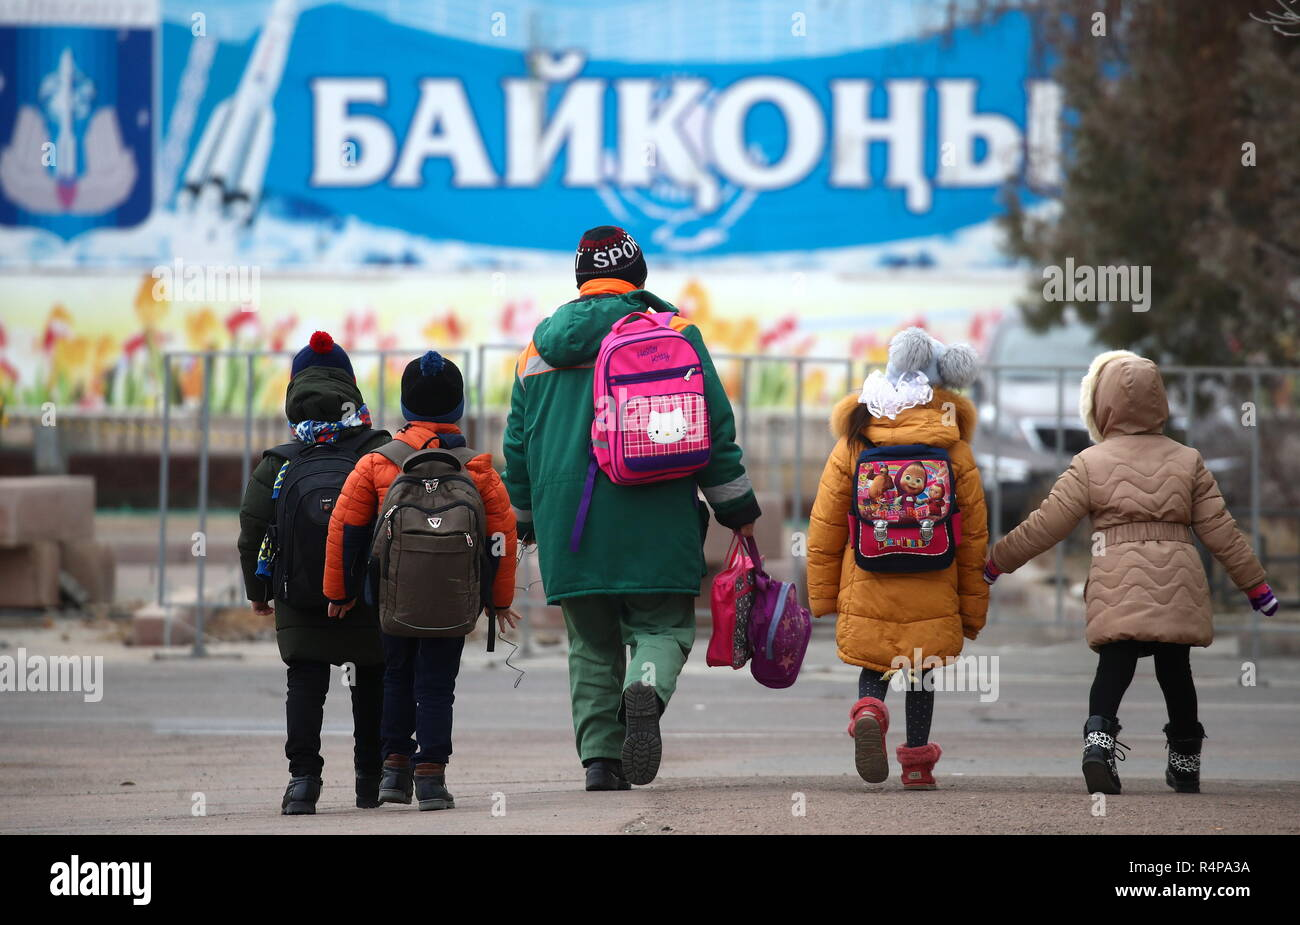 KAZAKHSTAN - NOVEMBER 28, 2018: Schoolchildren in the city of Baikonur rented by Russia from Kazakhstan along with the Baikonur Cosmodrome. Valery Sharifulin/TASS - Stock Image